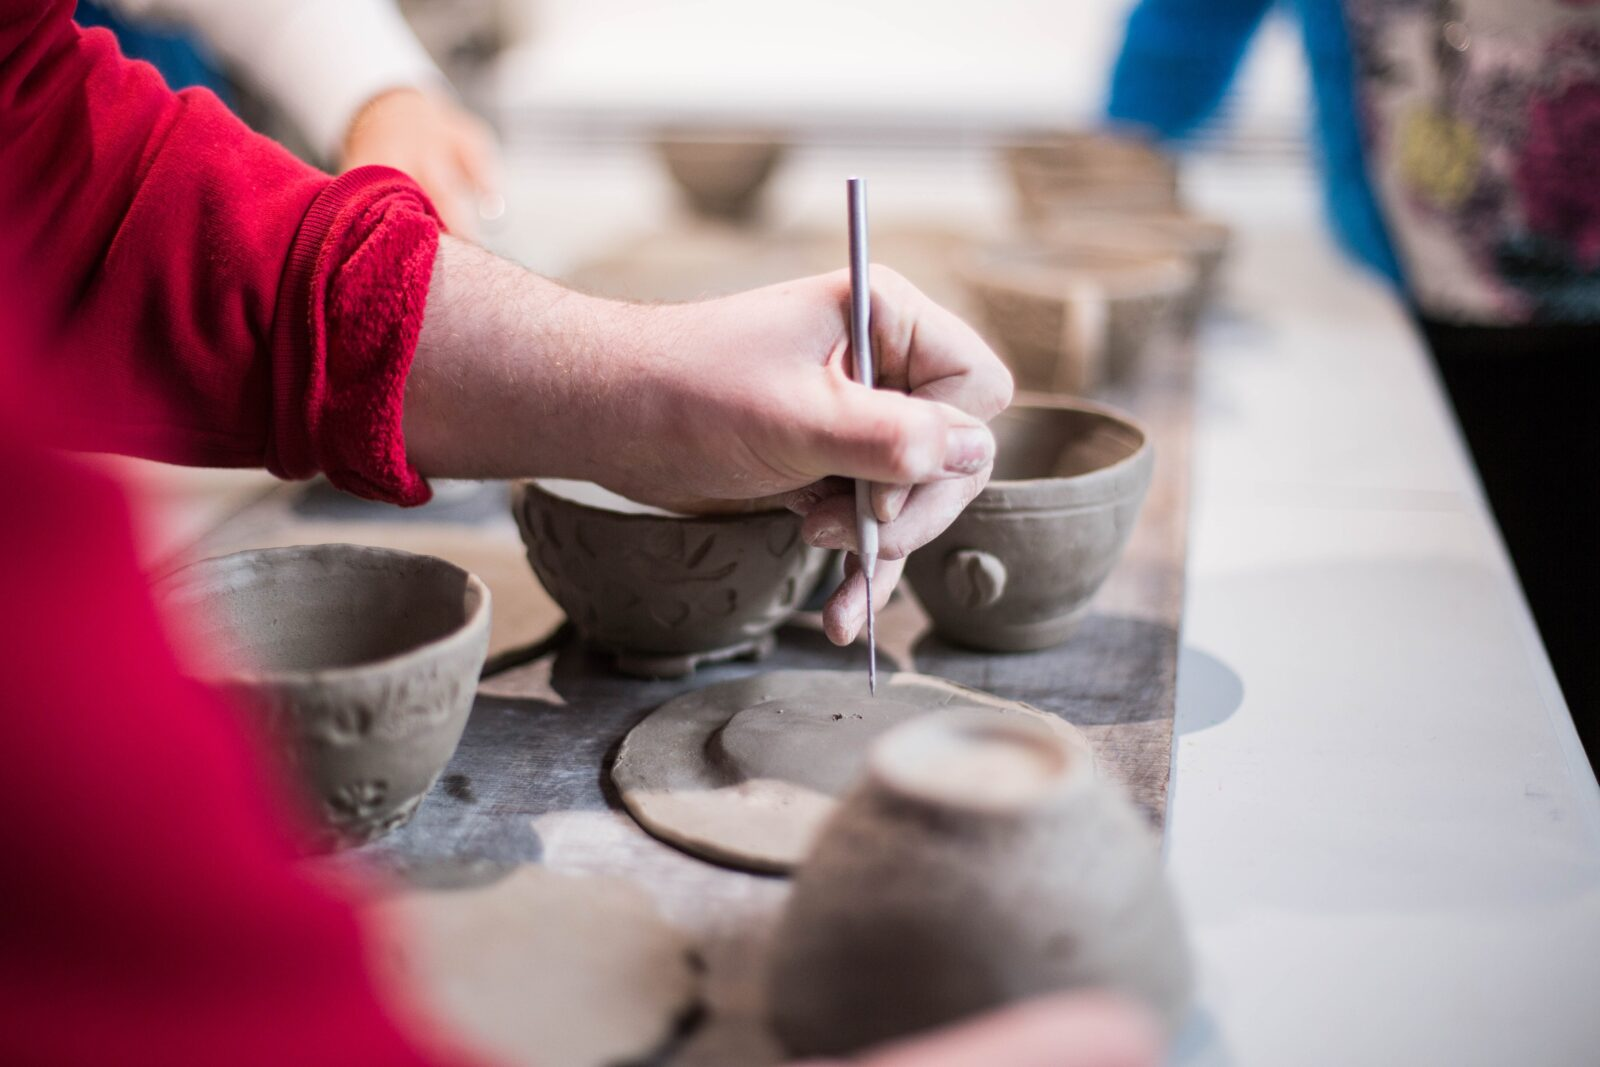 Detail shot of someone wearing a red long-sleeve shirt applying details to clay pots using a metal tool.